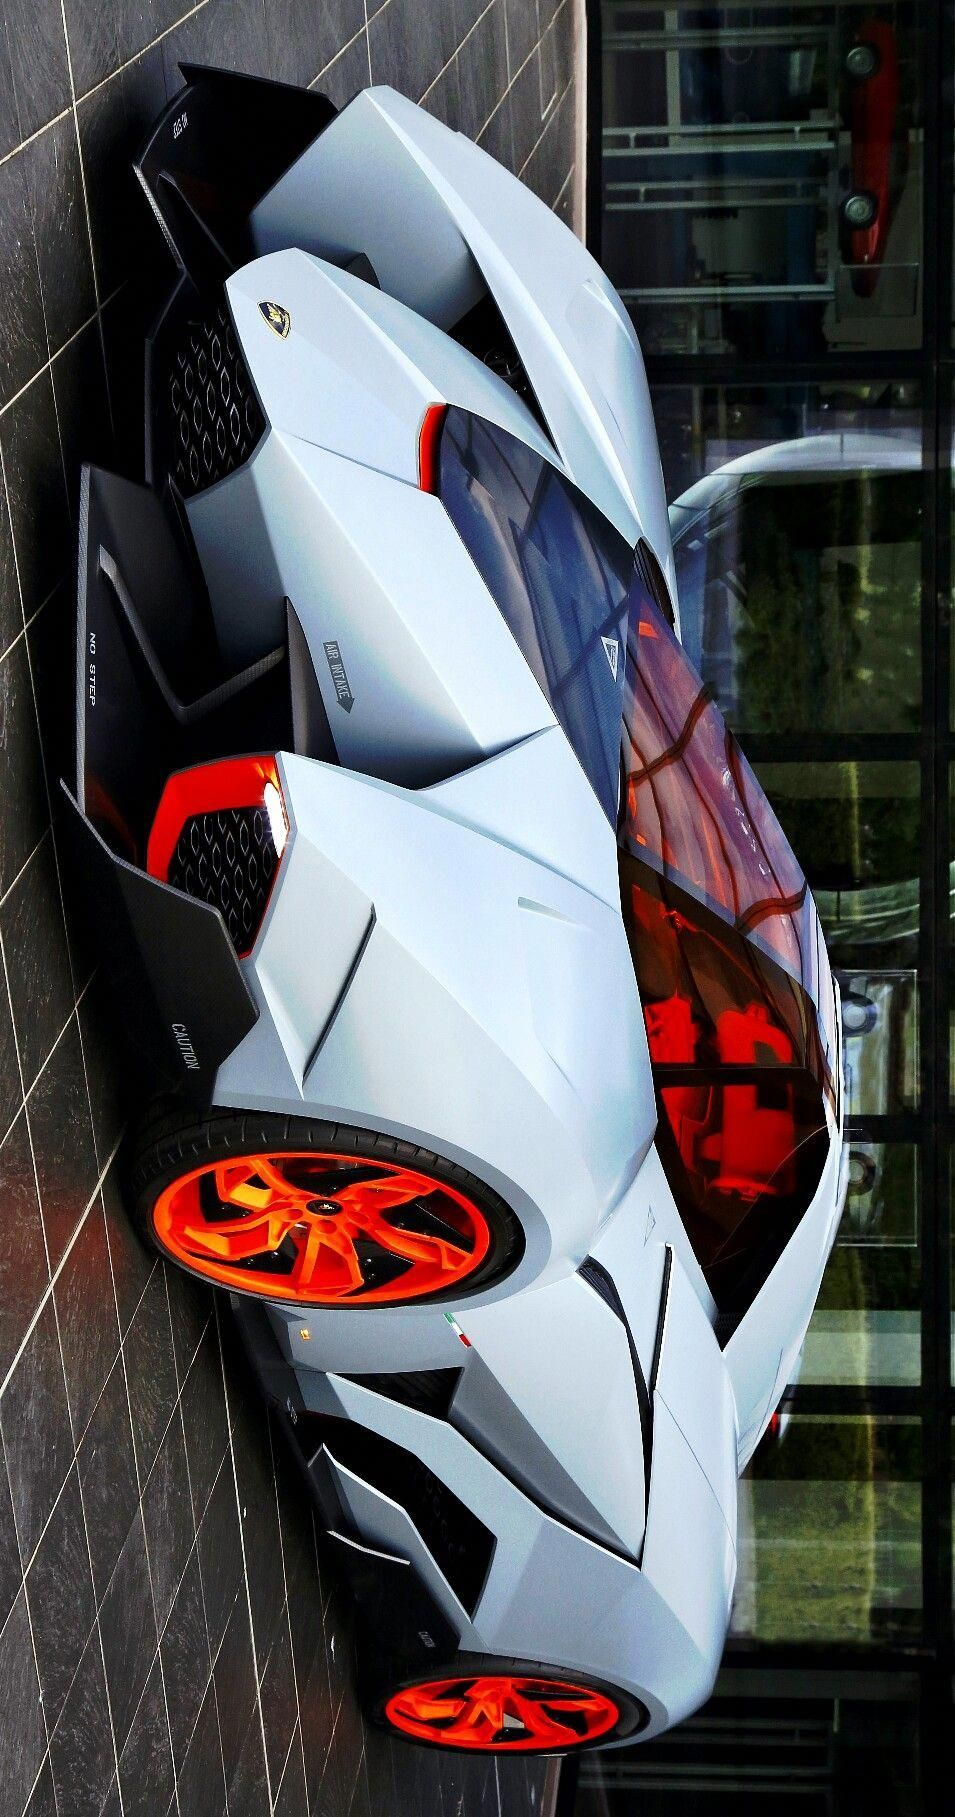 Pin On Luxury Cars In 2020 Dream Cars Lamborghini Super Cars Lamborghini Egoista